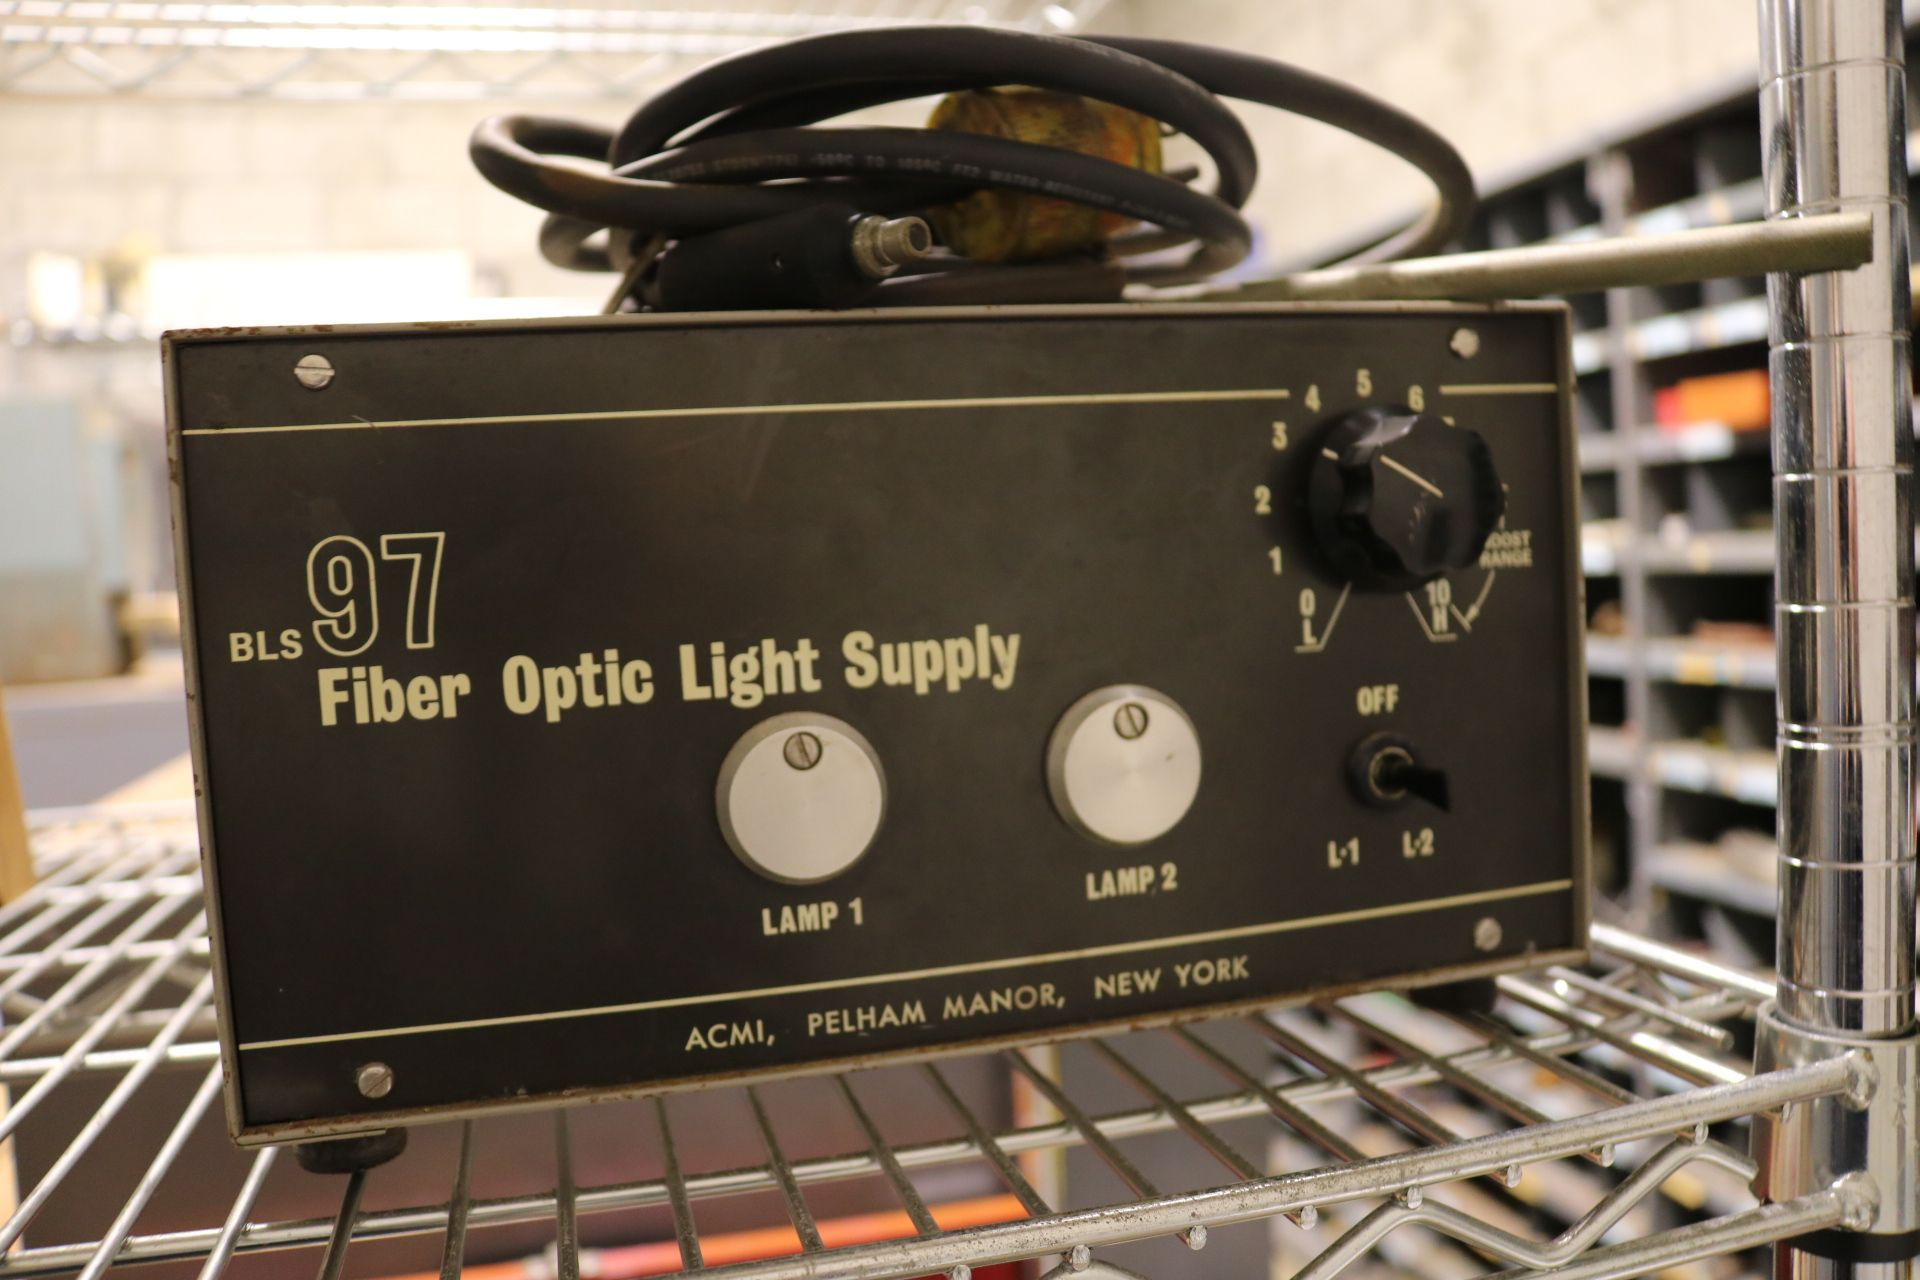 Lot 16 - LOT - MISC ITEMS TO INCLUDE: OLYMPUS ILK-5 LIGHT SOURCE, PACK-RITE CONTINUOUS HAND ROTARY SEALER,